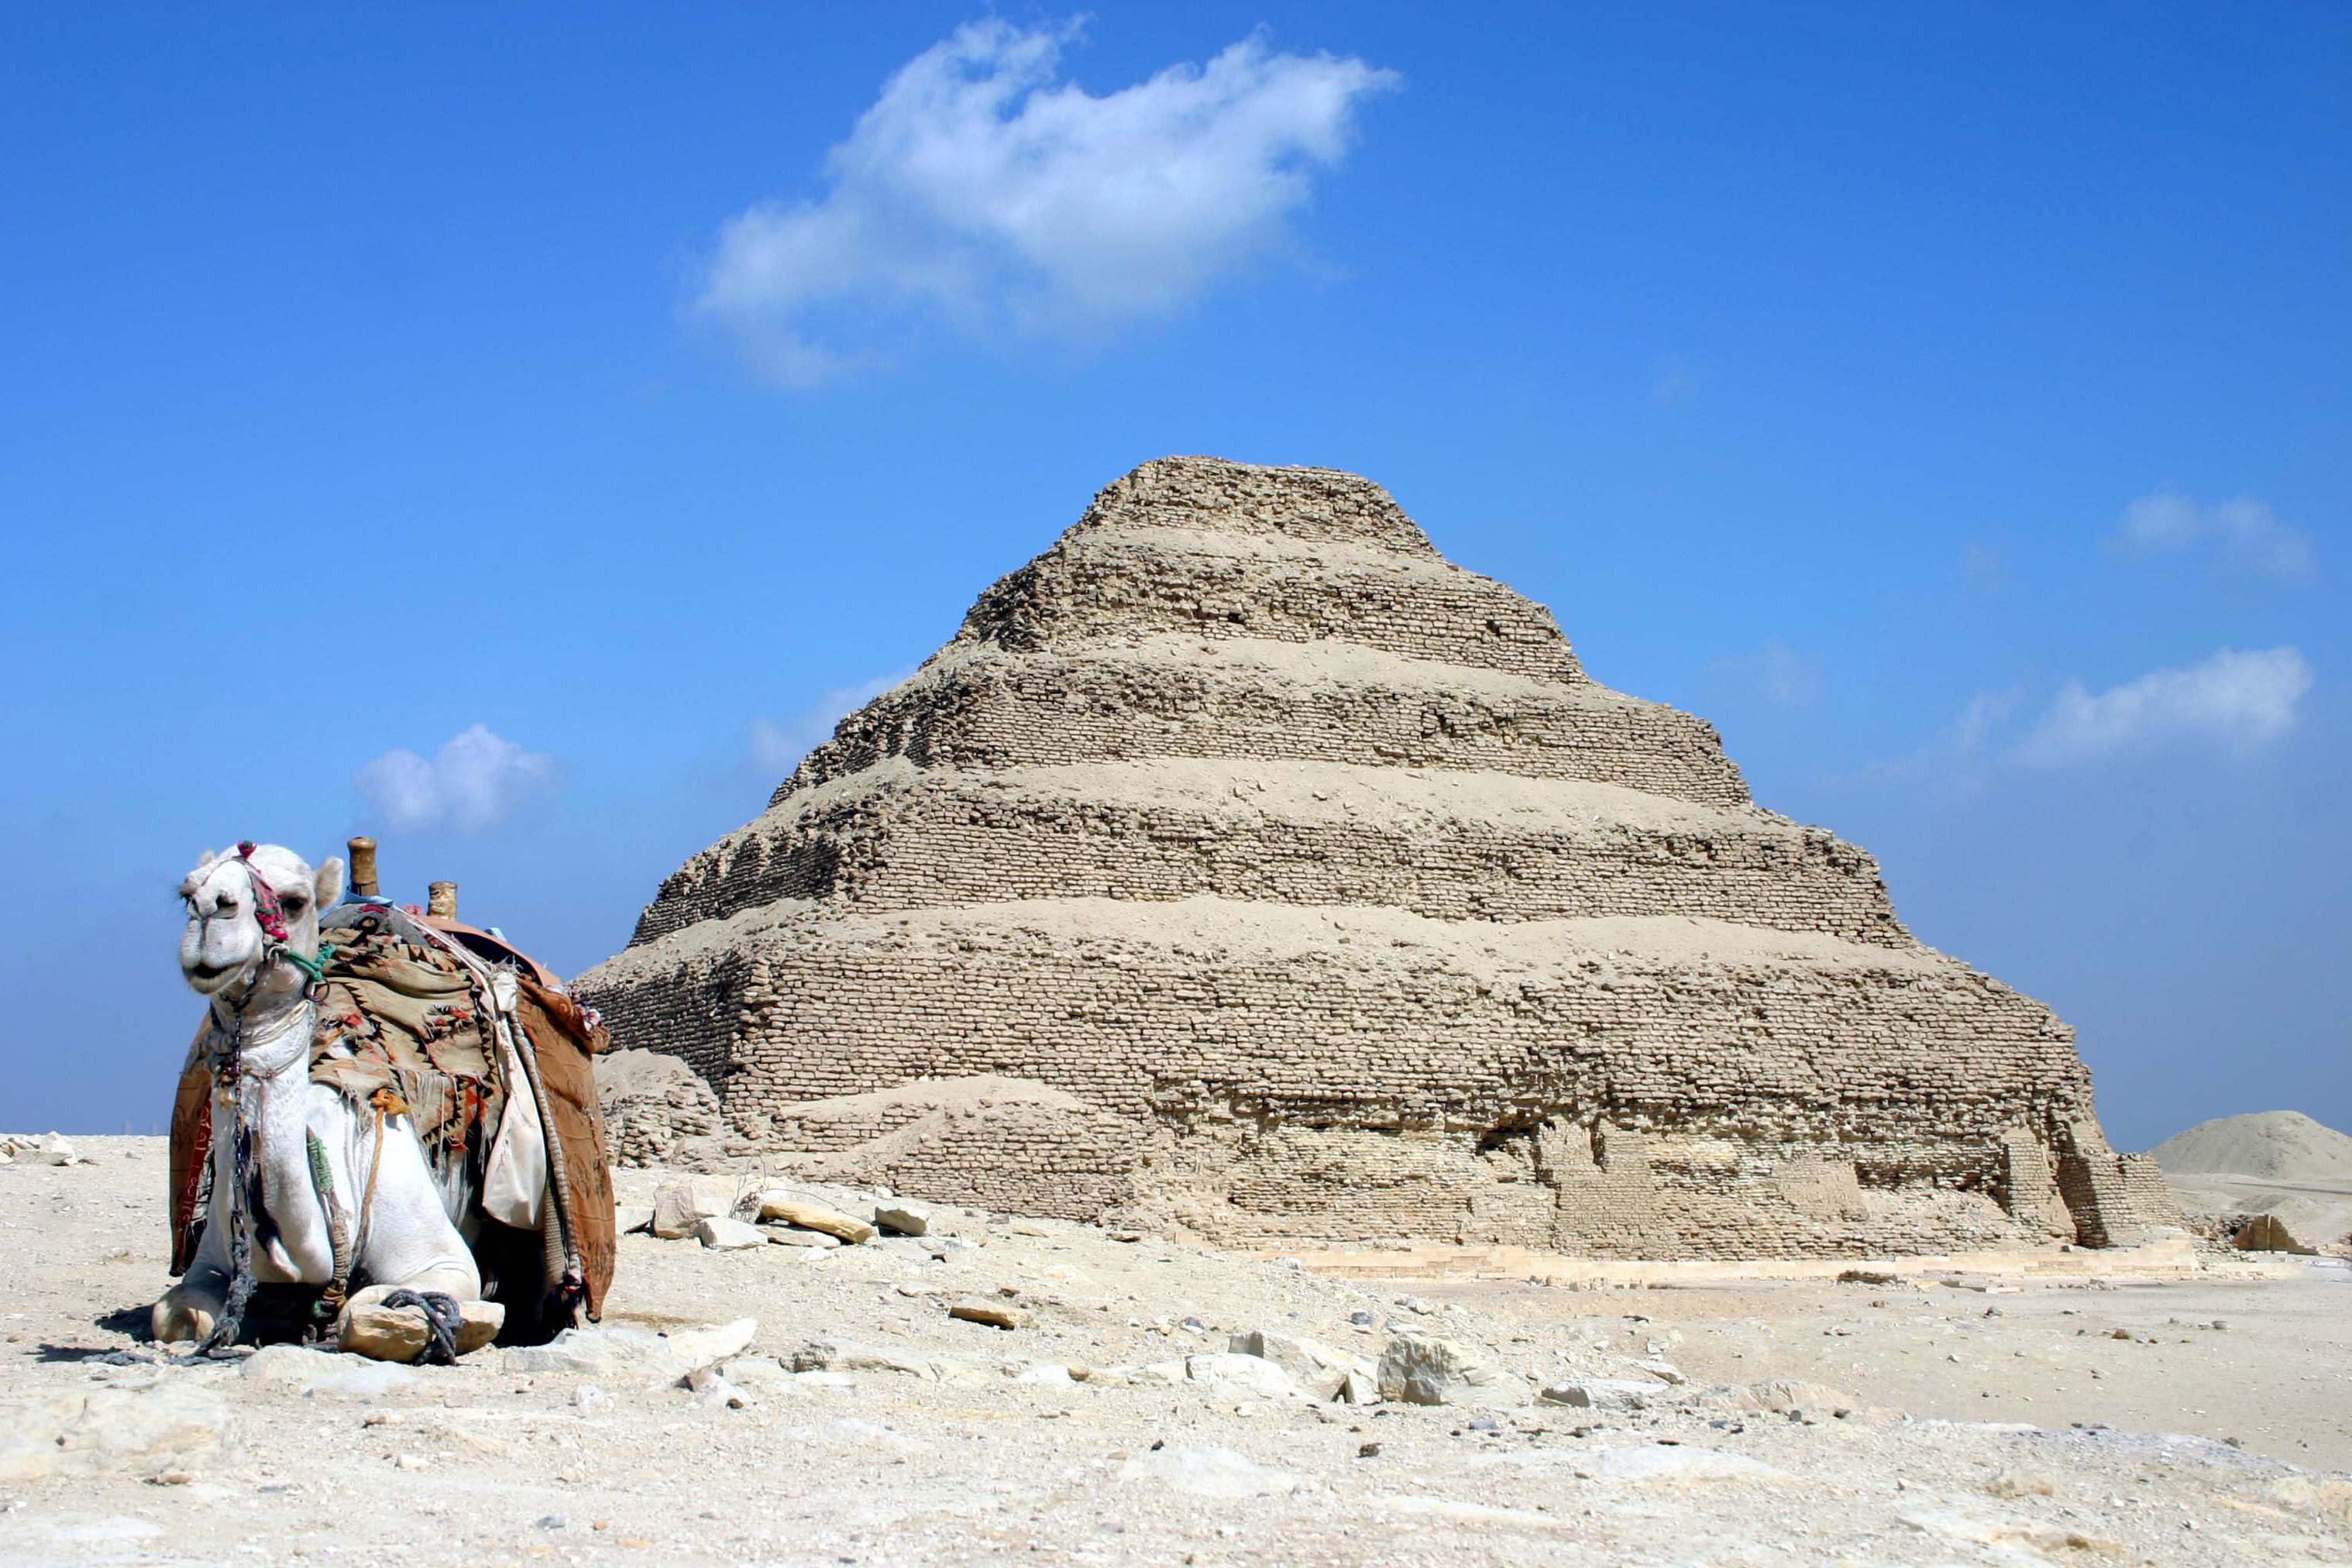 Egypt reopens oldest pyramid after 14-year restoration